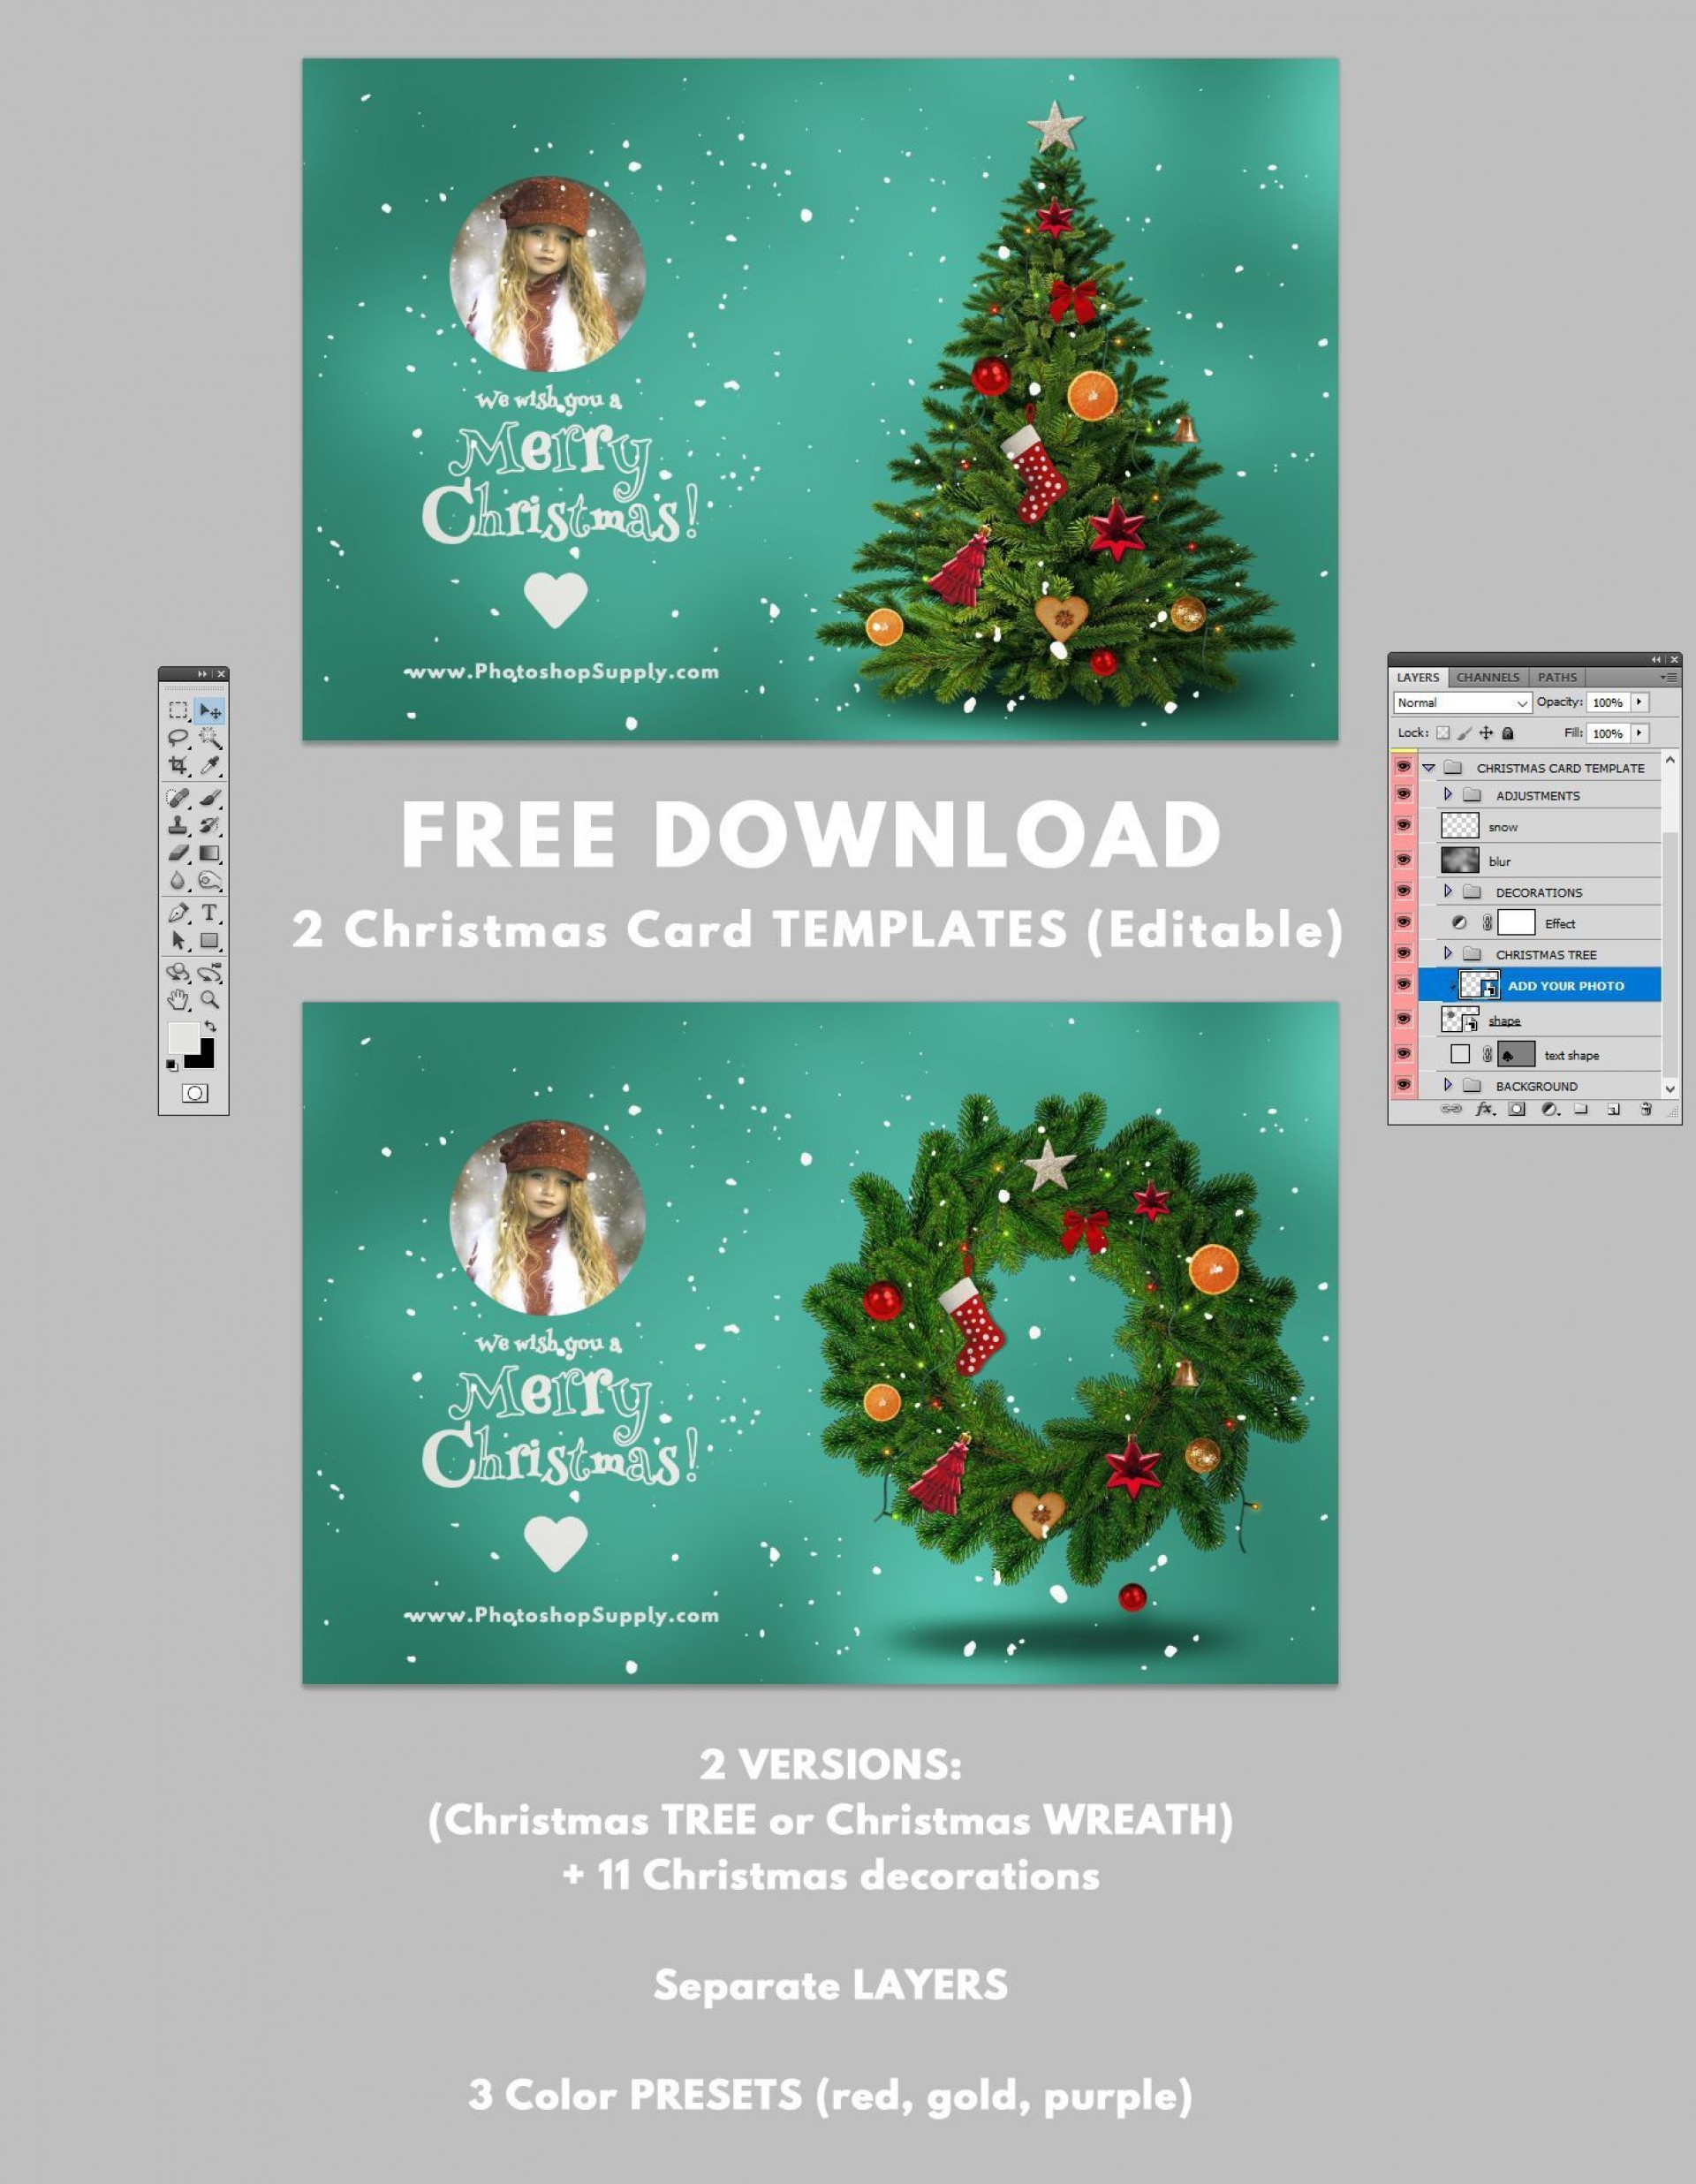 001 Excellent Christma Card Template Photoshop Picture  Free Download Funny1920